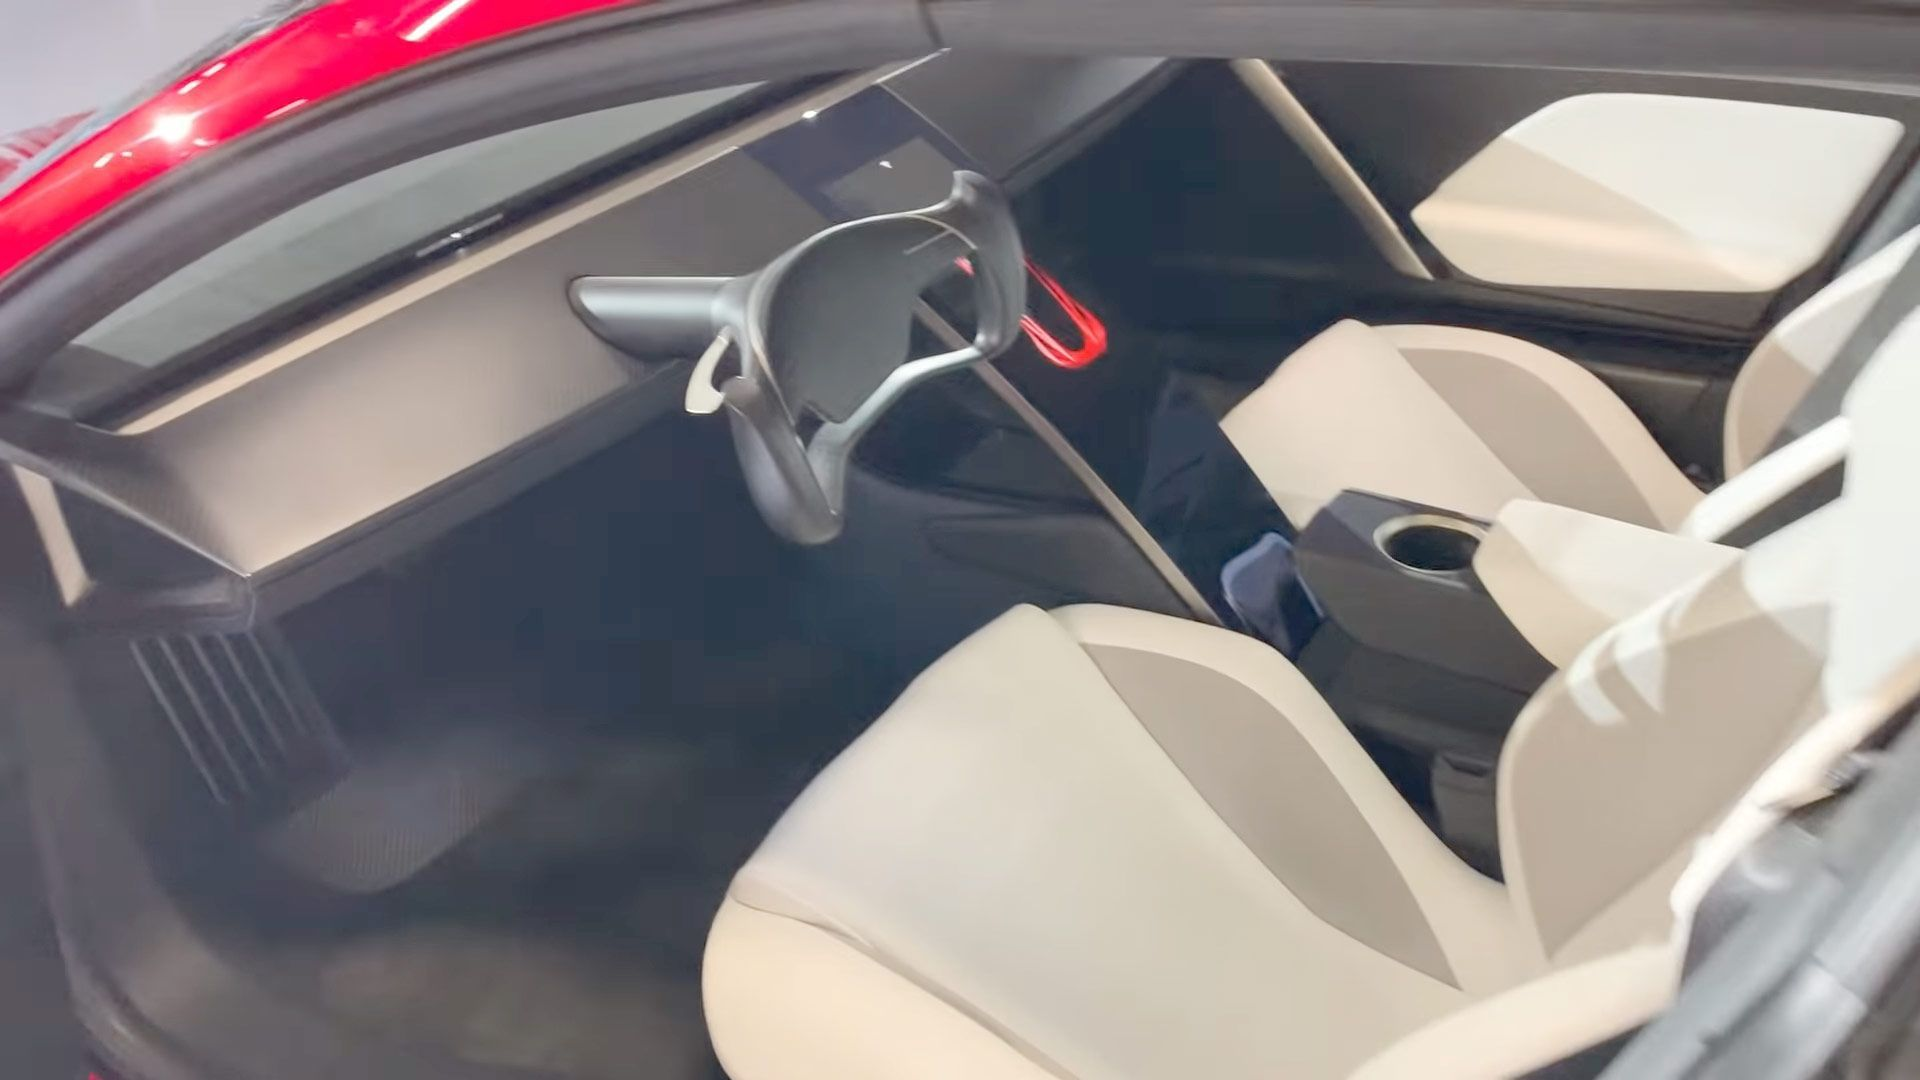 This Tesla Roadster video shows its unique entry feature (no key, card or fob) The latest of the Ne